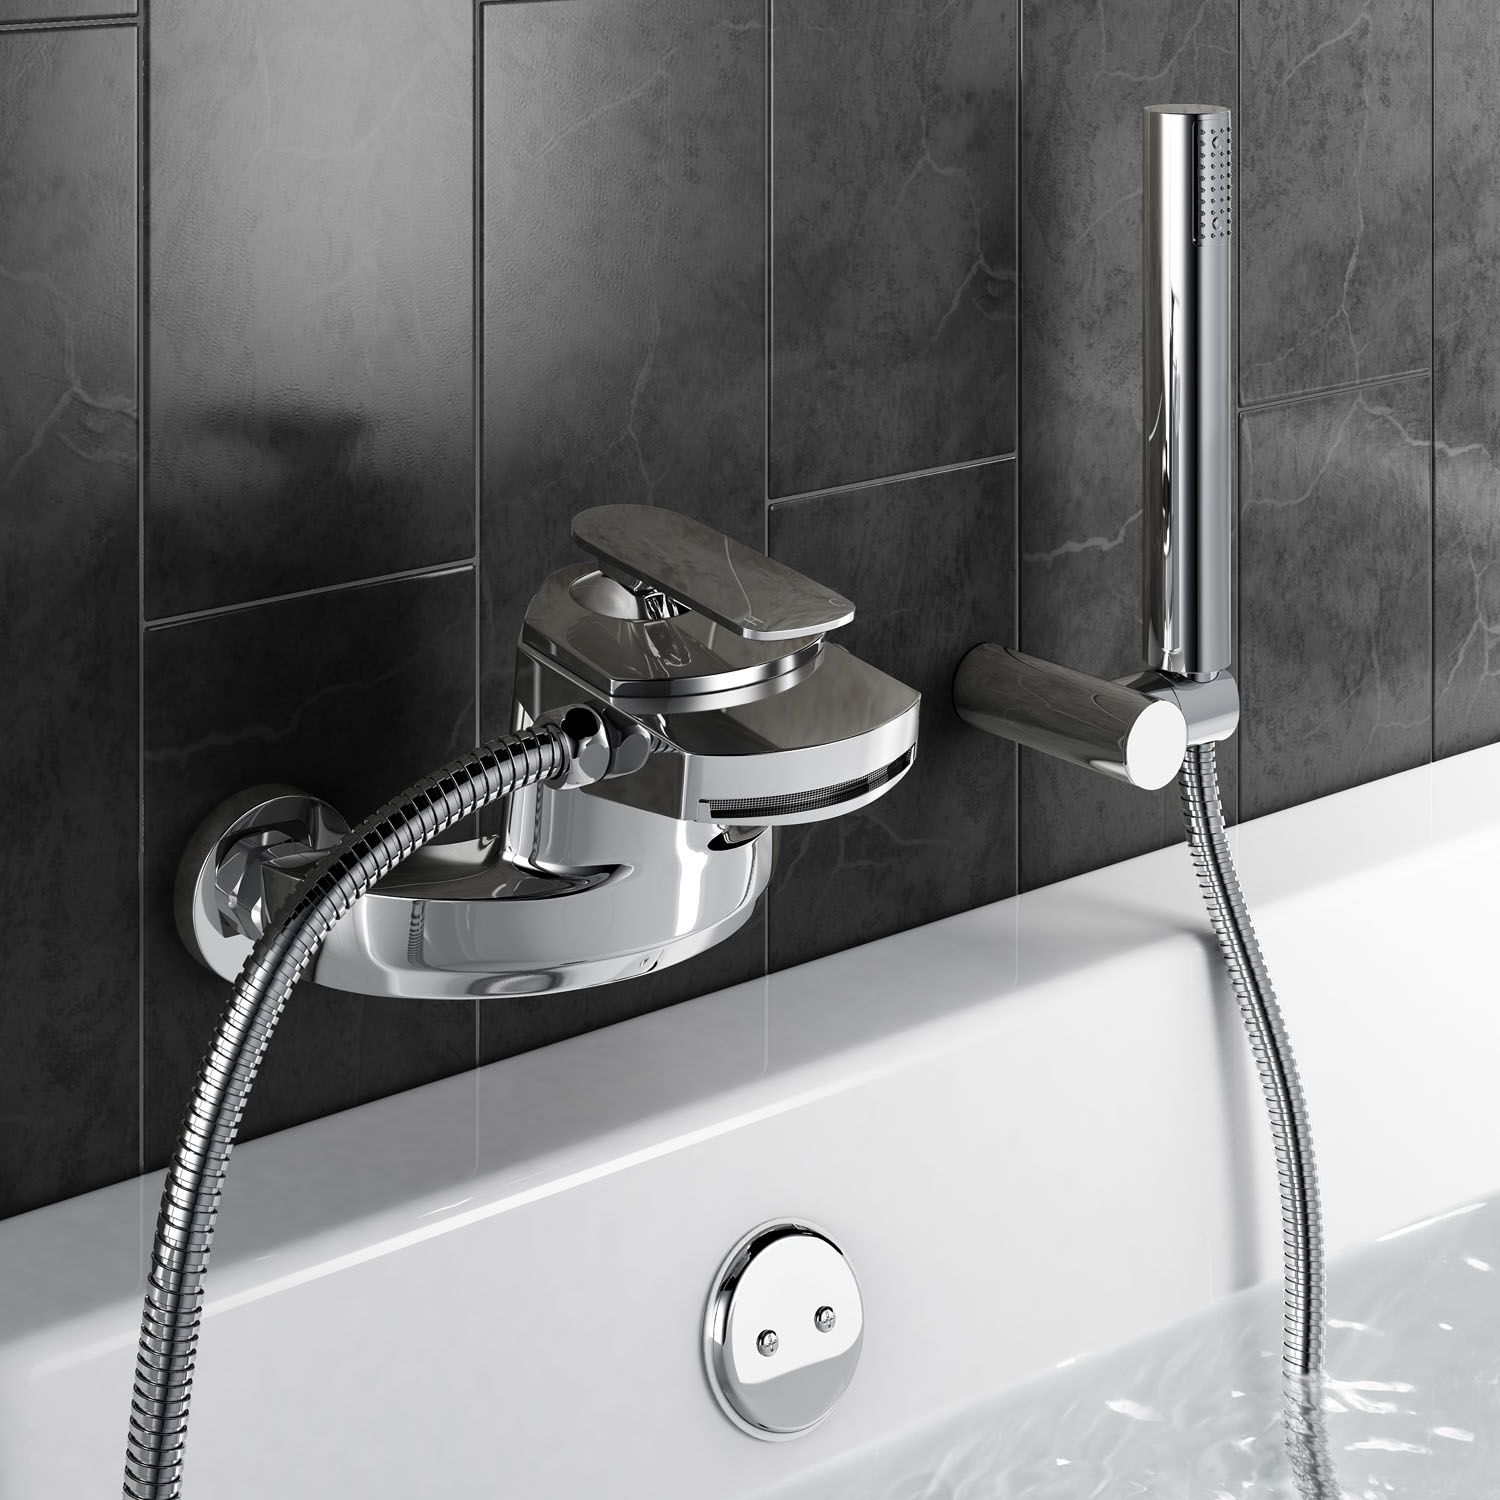 Bath Mixer Tap With Shower Oshi Chrome Bath Tap Bathempire Waterfall Bath Taps Handheld Shower Head Bath Mixer Taps